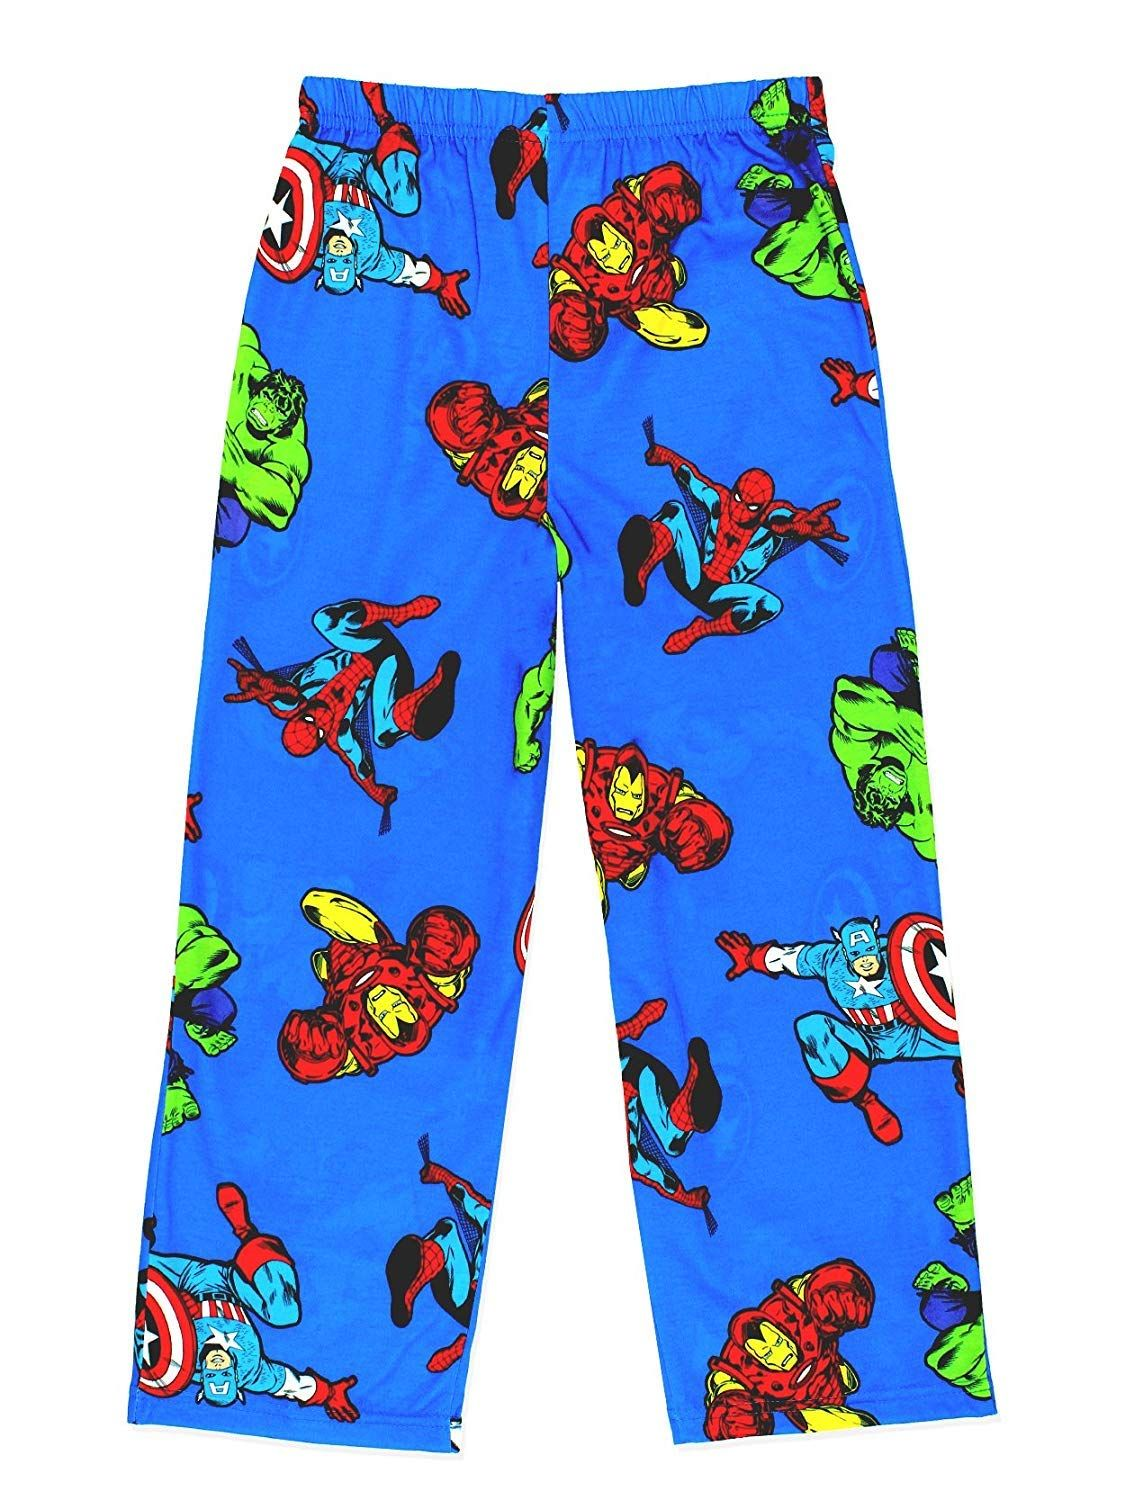 ae9aacb274d6 Marvel Avengers Boys Lounge Pajama Pants (Little Kid Big Kid) Fight crime  in your sleep in these awesome Avengers boys flannel pajama pants!